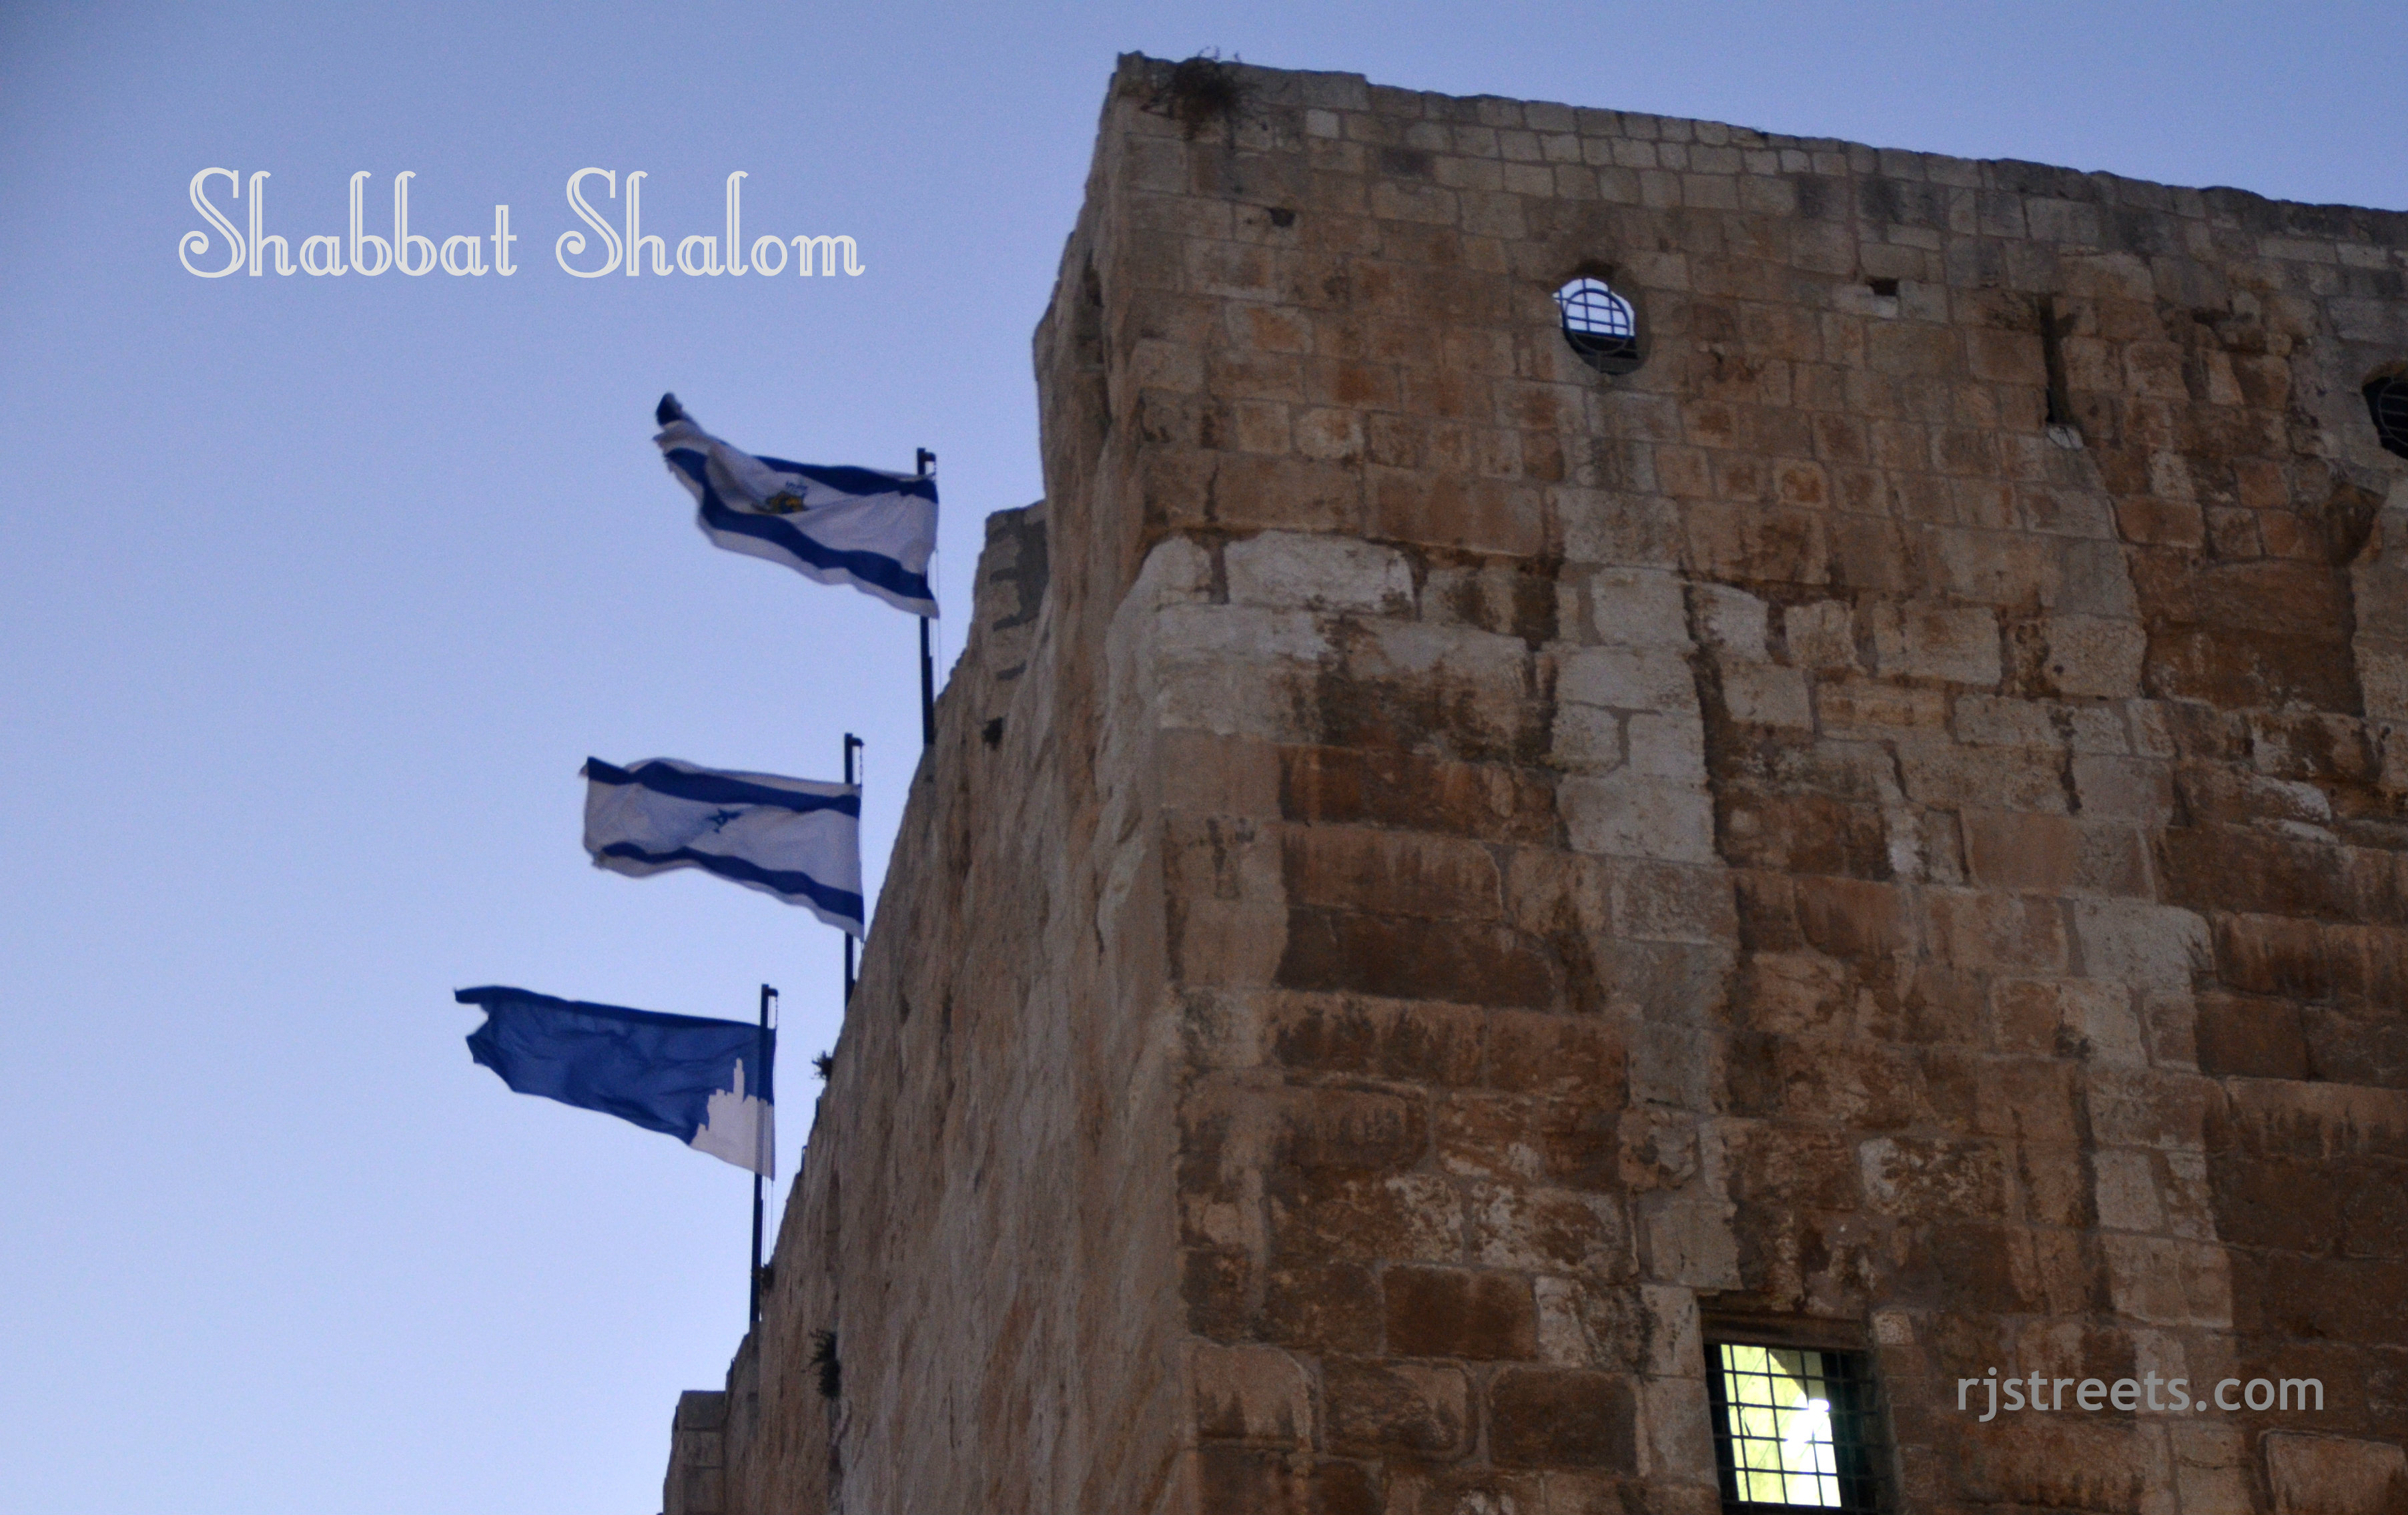 image Shabat shalom, photo tower of Daivd, picture flags blowing